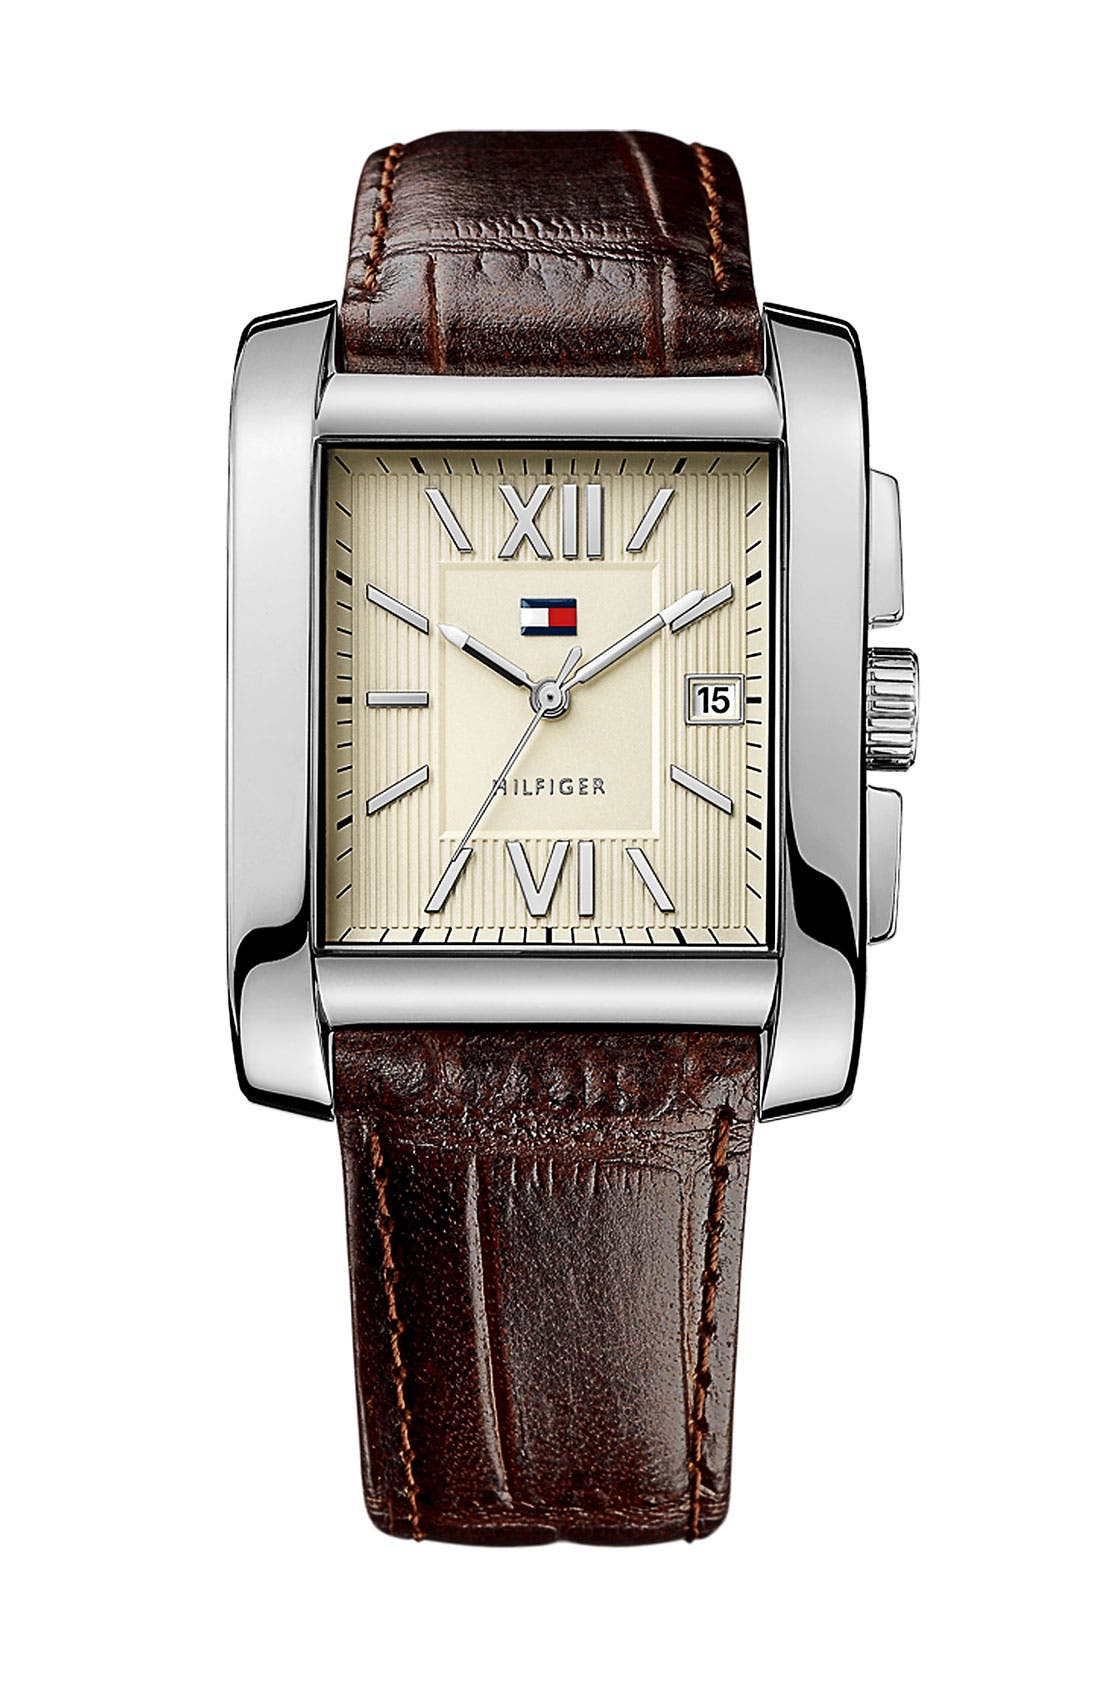 Main Image - Tommy Hilfiger Square Leather Strap Watch, 36mmW x 47mm